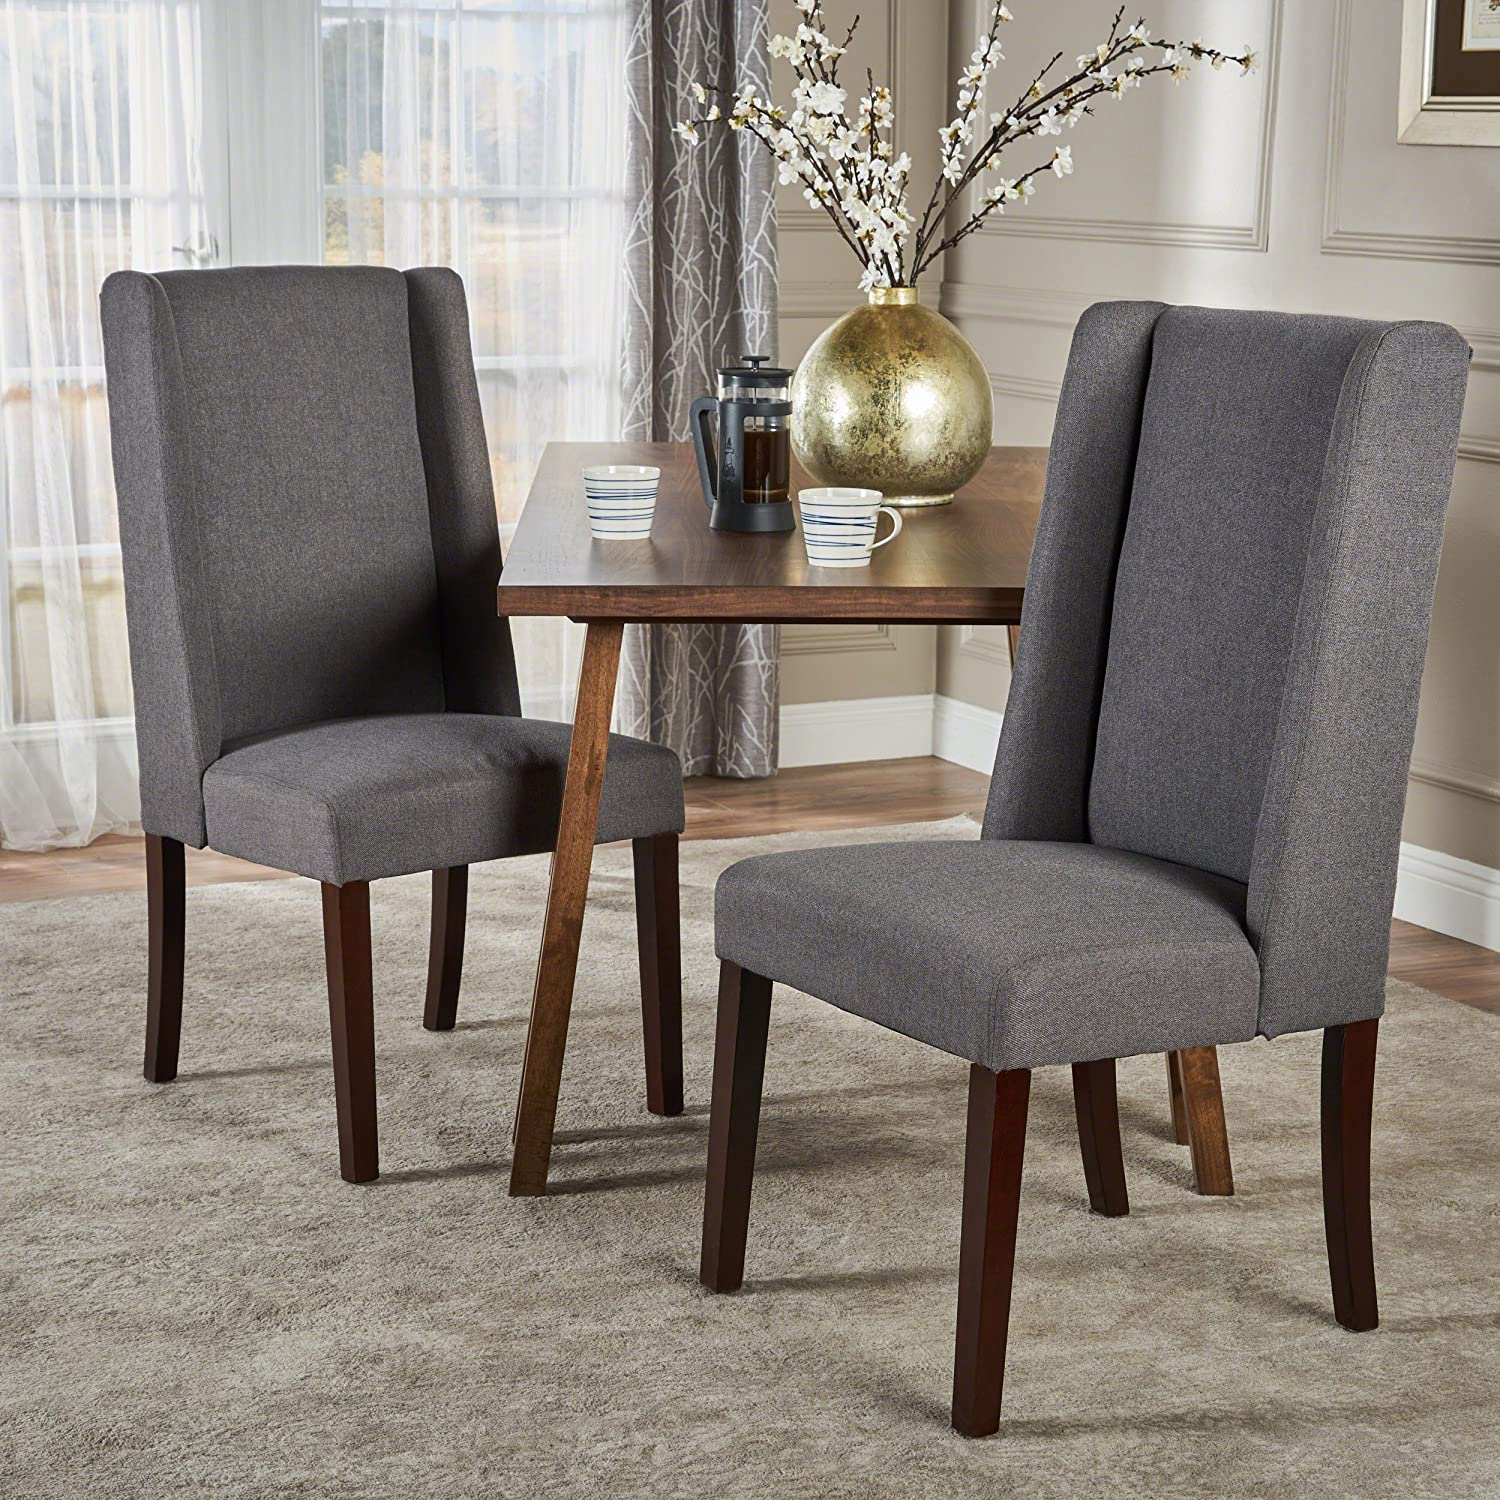 Christopher Knight Home Rory Fabric Dining Chair Set of 2 , Dark Grey